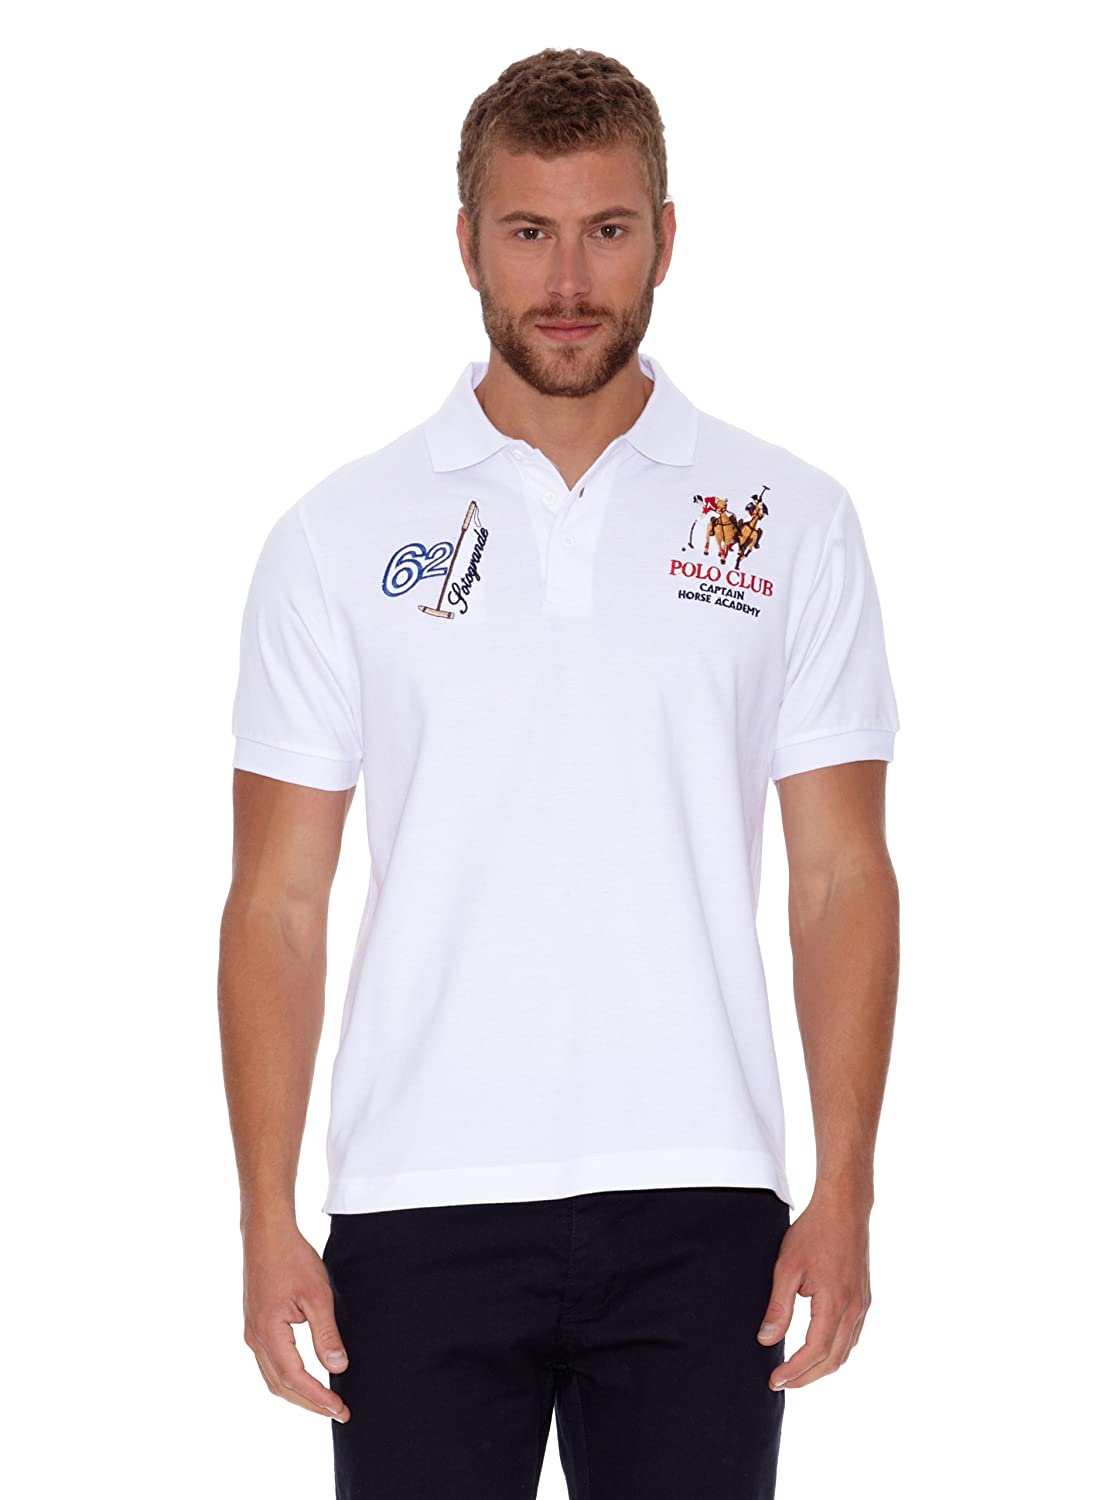 POLO CLUB Polo Manga Corta Sotogrande Blanco M: Amazon.es: Ropa y ...